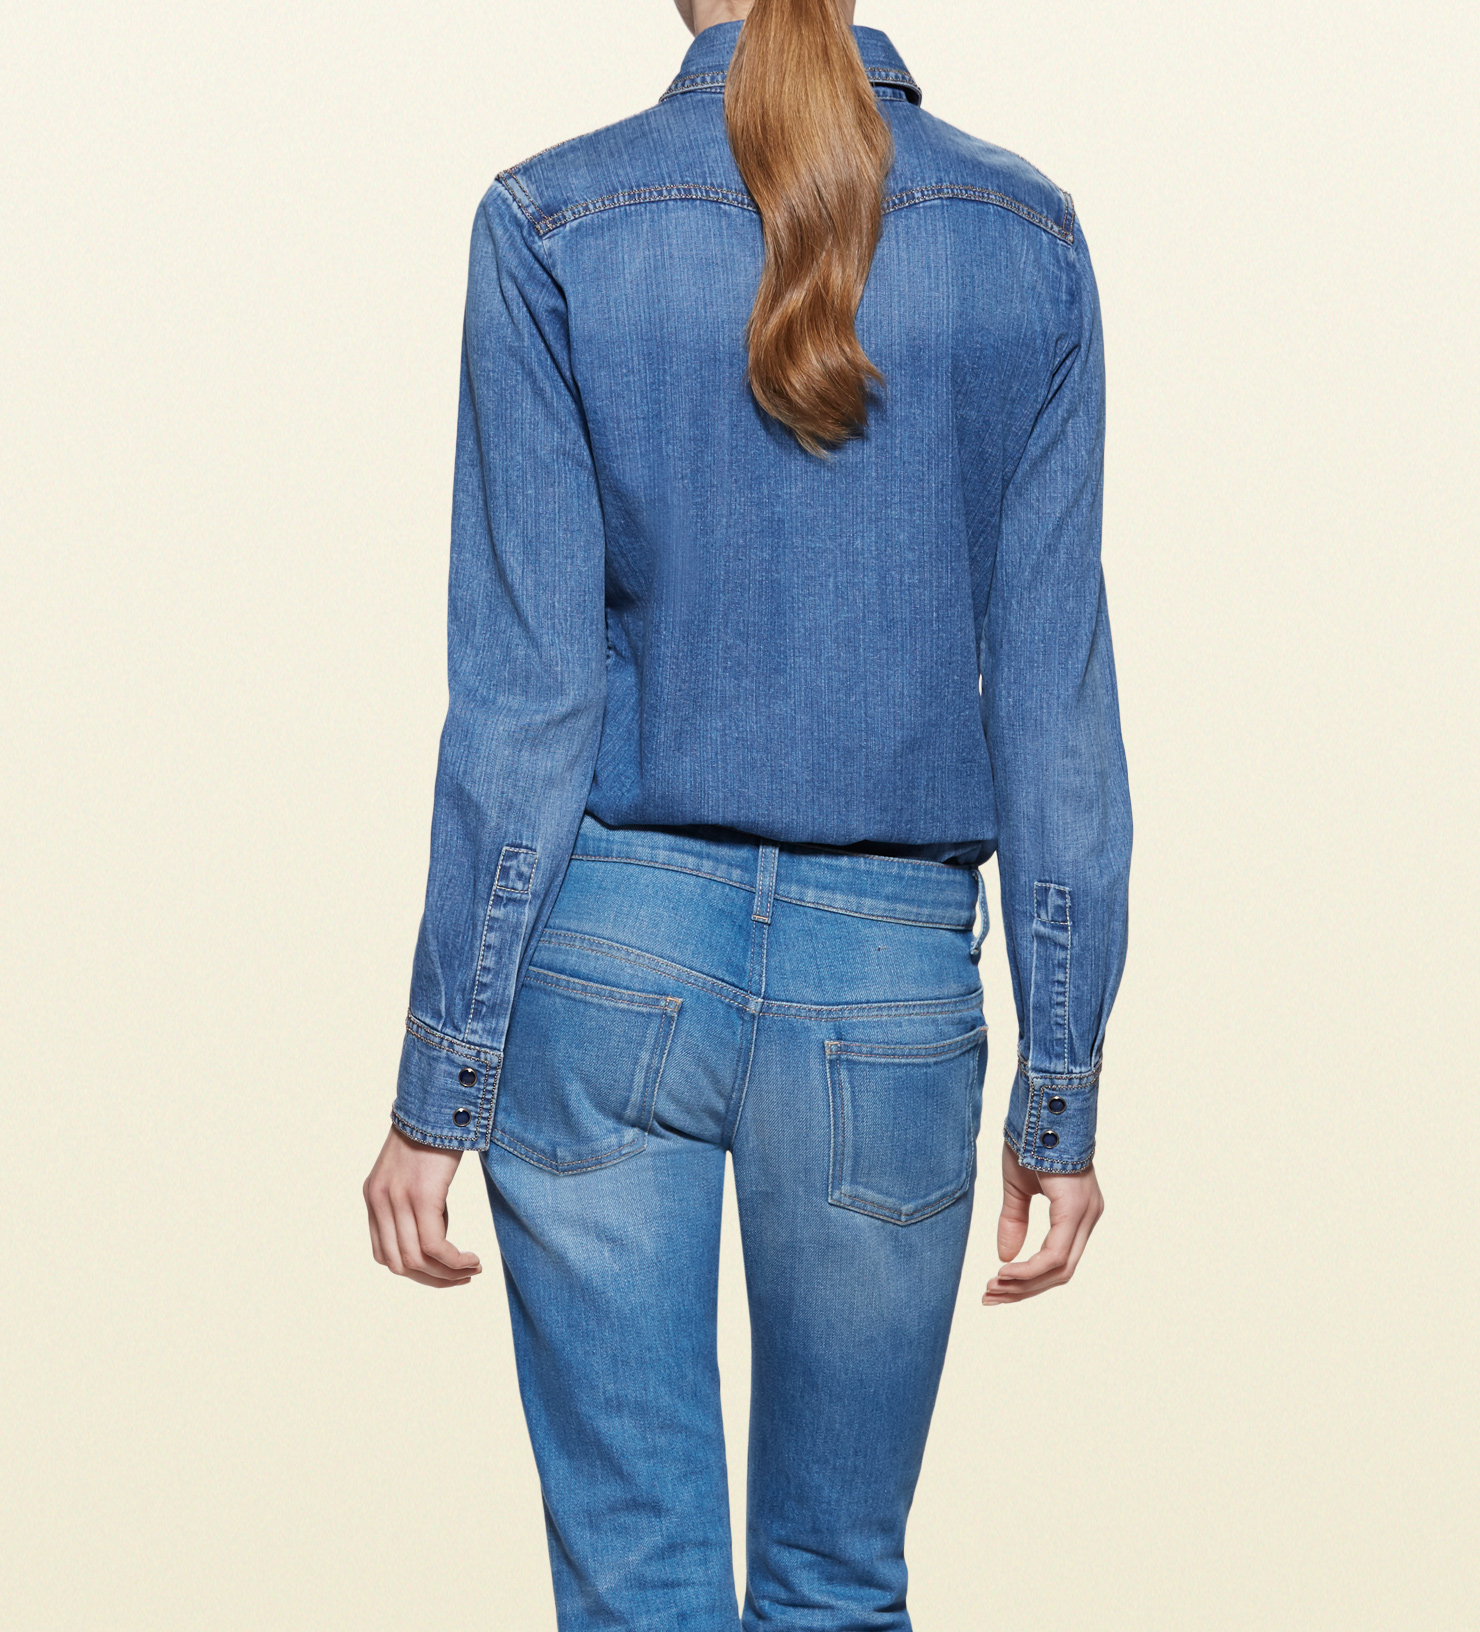 Lyst gucci denim button down shirt in blue for Denim button down shirts